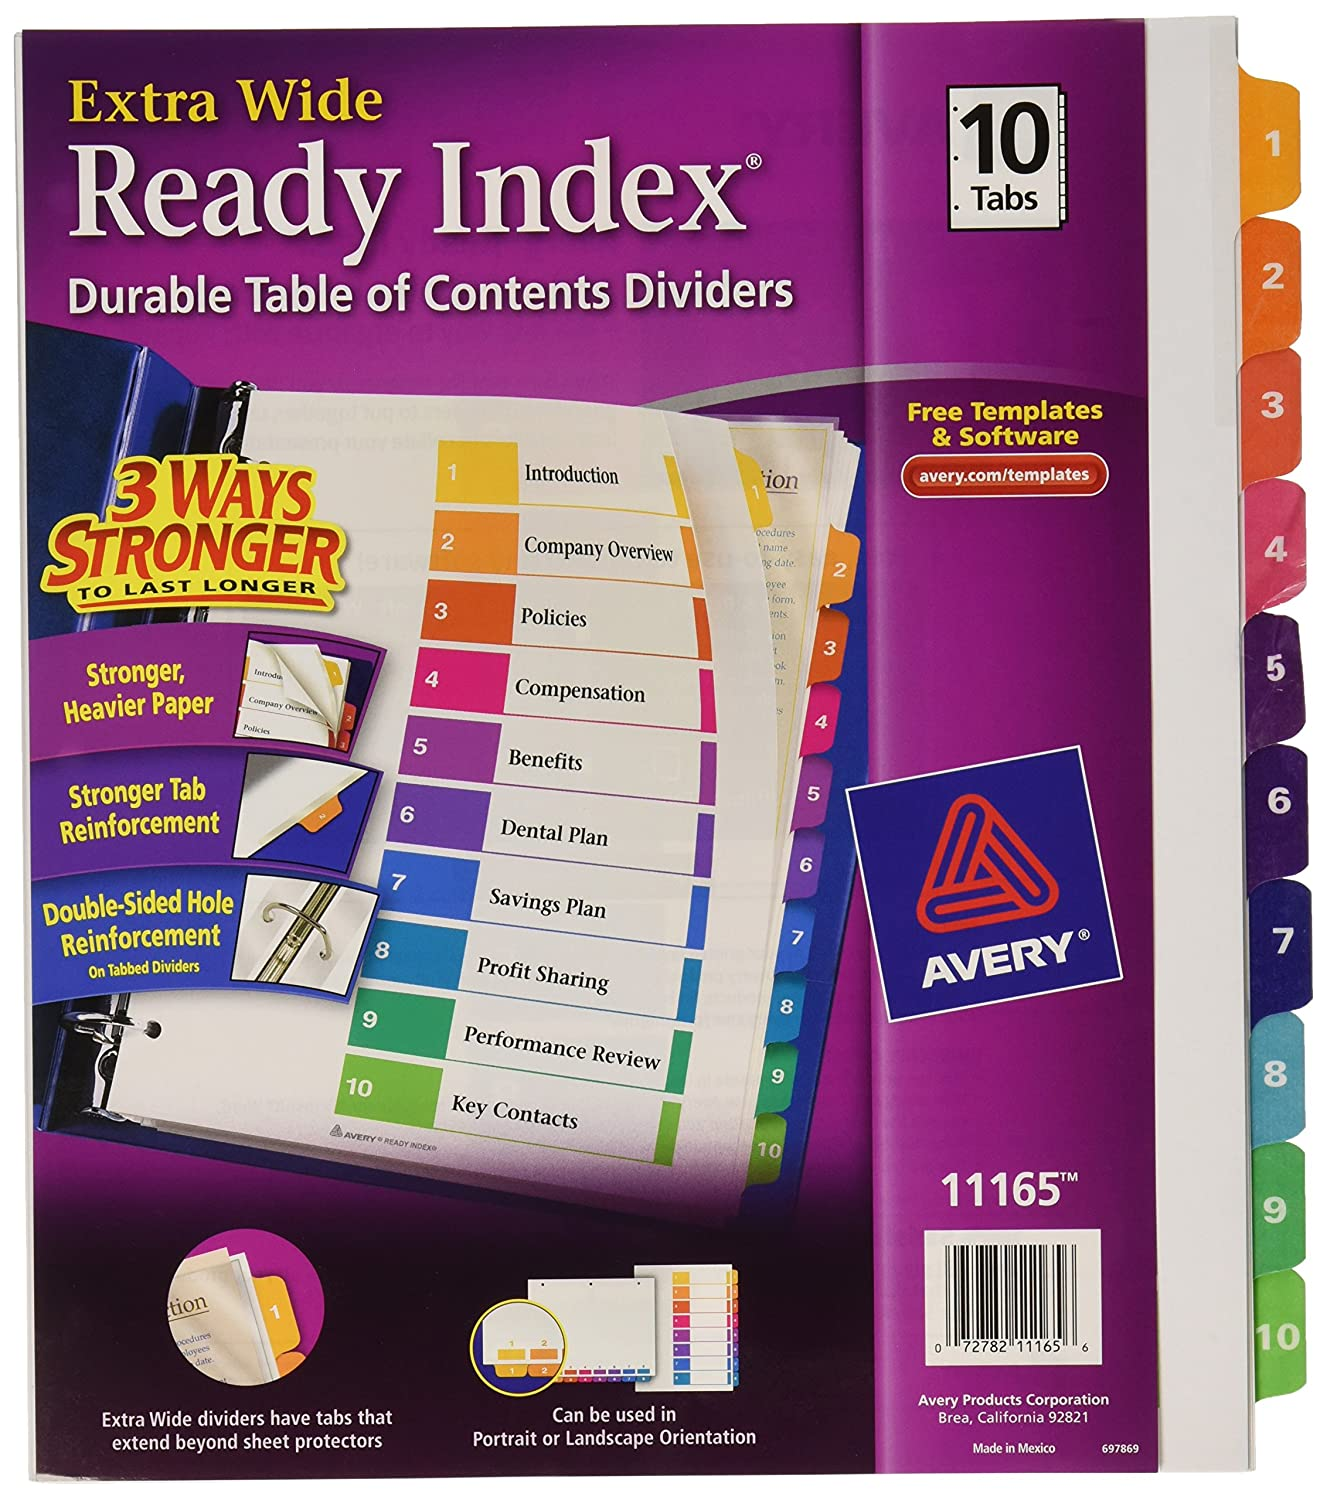 Avery Extrawide Ready Index Dividers